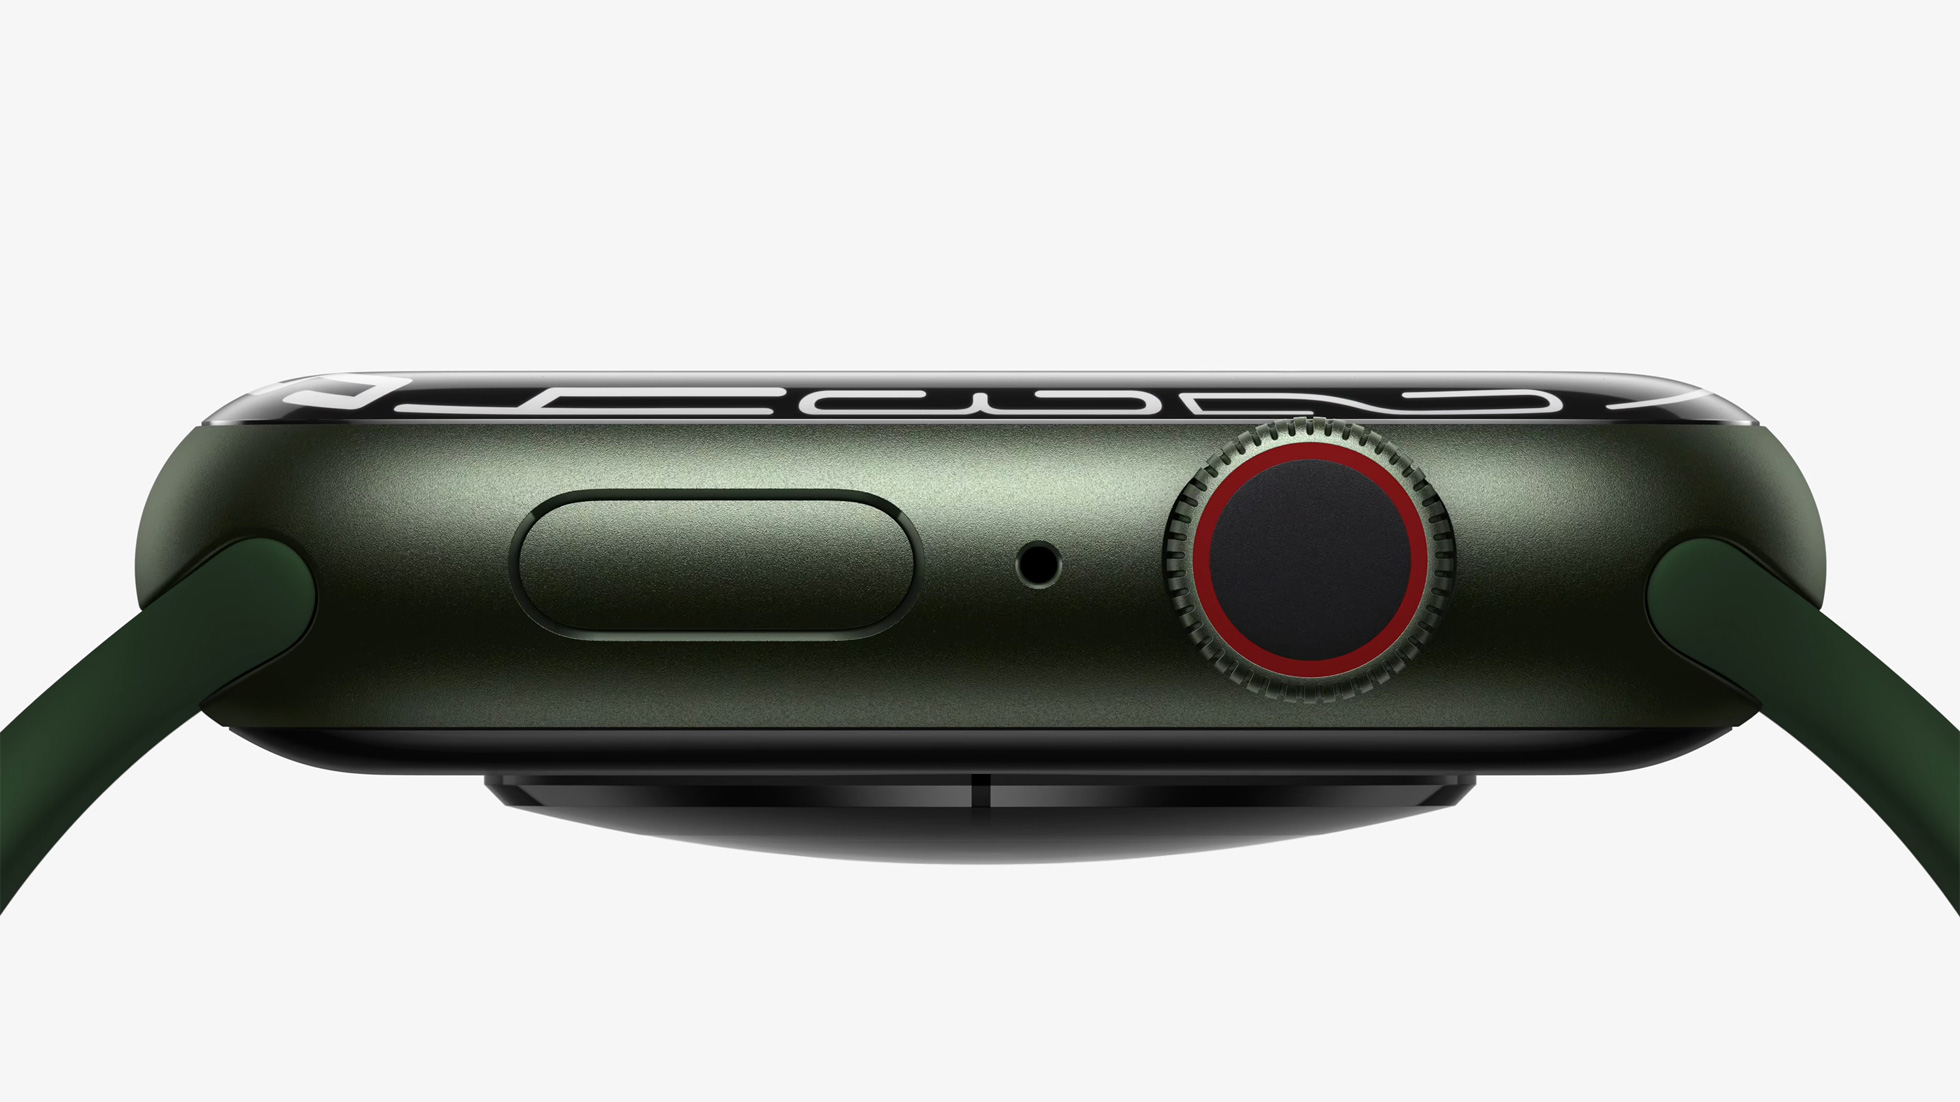 Apple's marketing image showing a profile view of Apple Watch Series 7